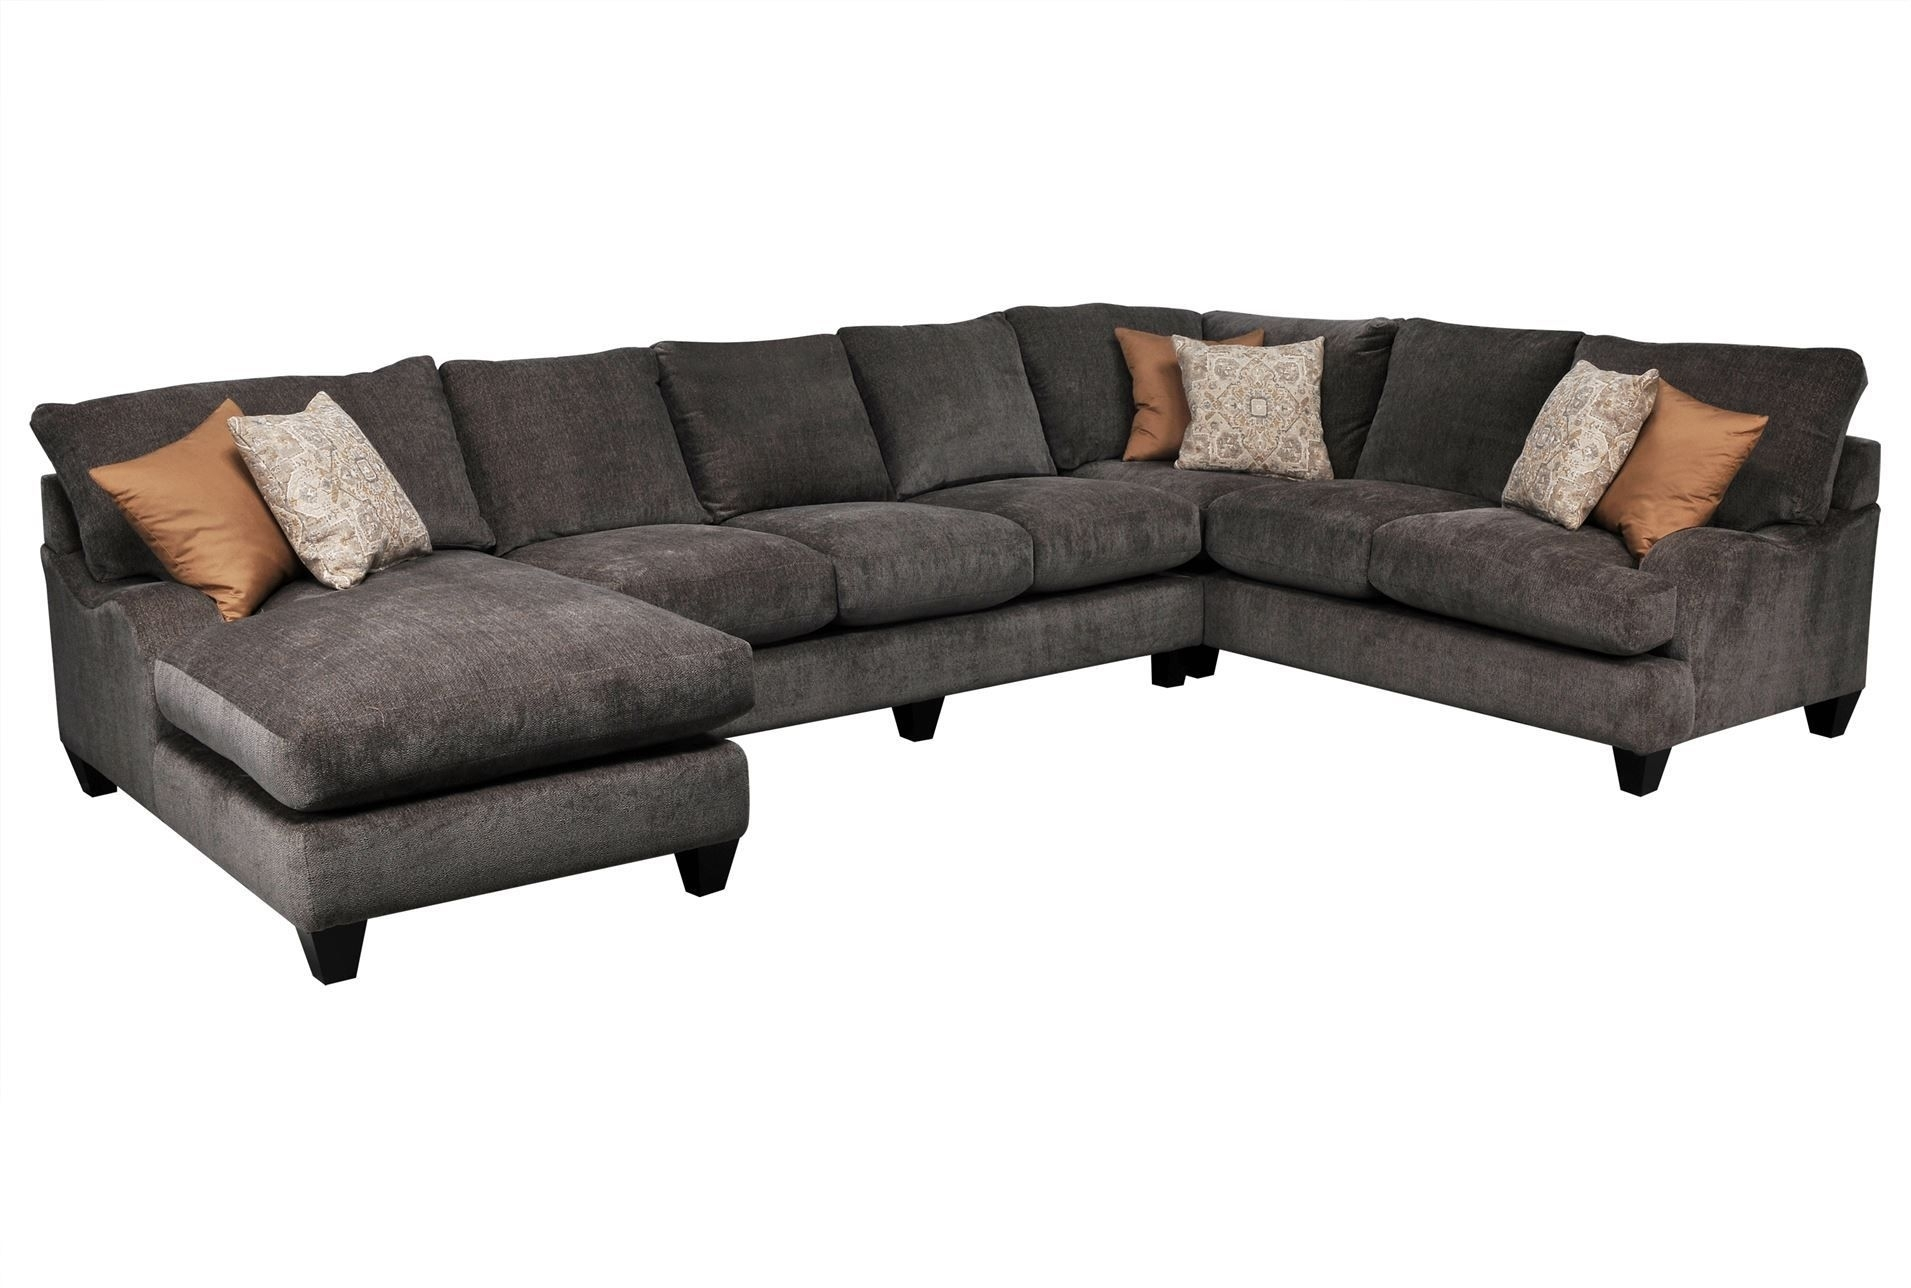 Pryce 3 Piece Sectional W/laf Chaise - Signature (2 Chaise) | A in Homemakers Sectional Sofas (Image 8 of 10)